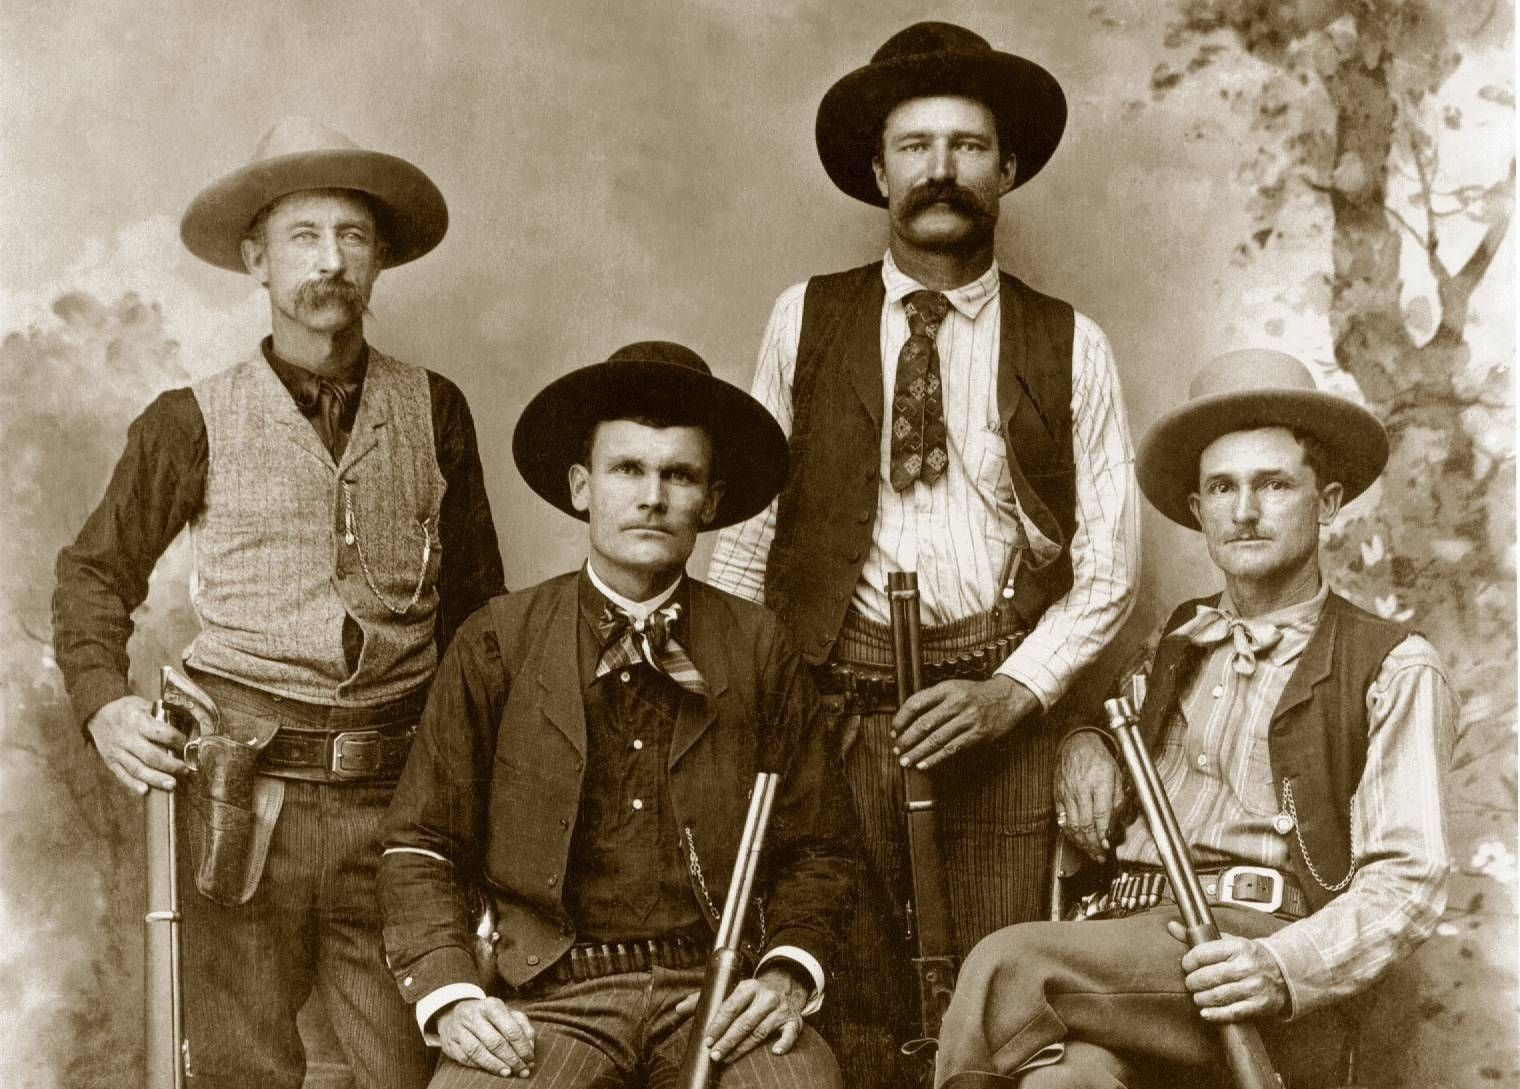 The Texas Rangers On The Shattered Frontier Old West Outlaws American Frontier Old West